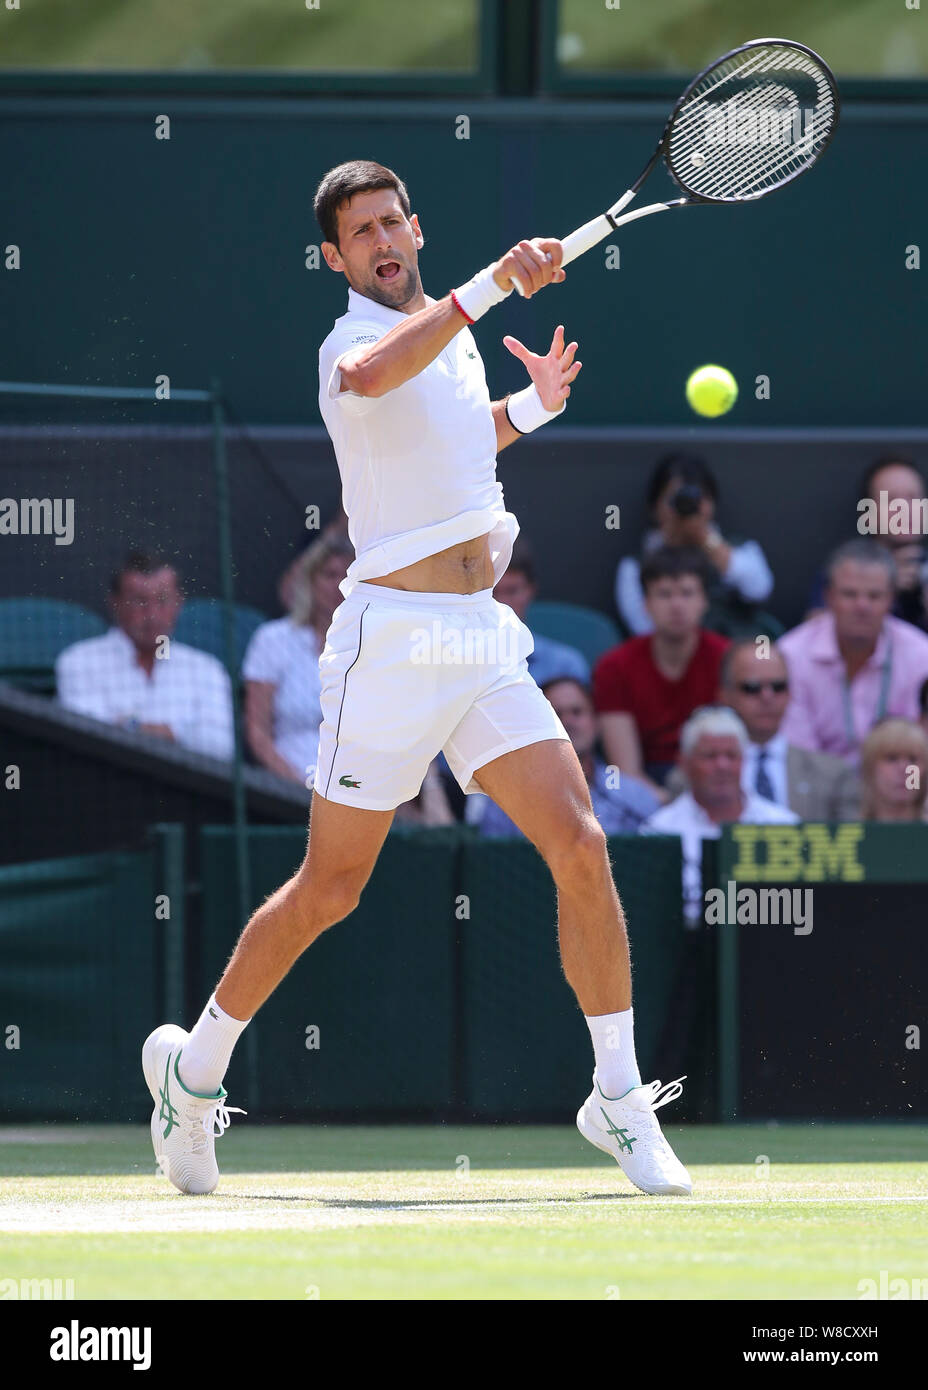 Novak Djokovic Forehand High Resolution Stock Photography And Images Alamy